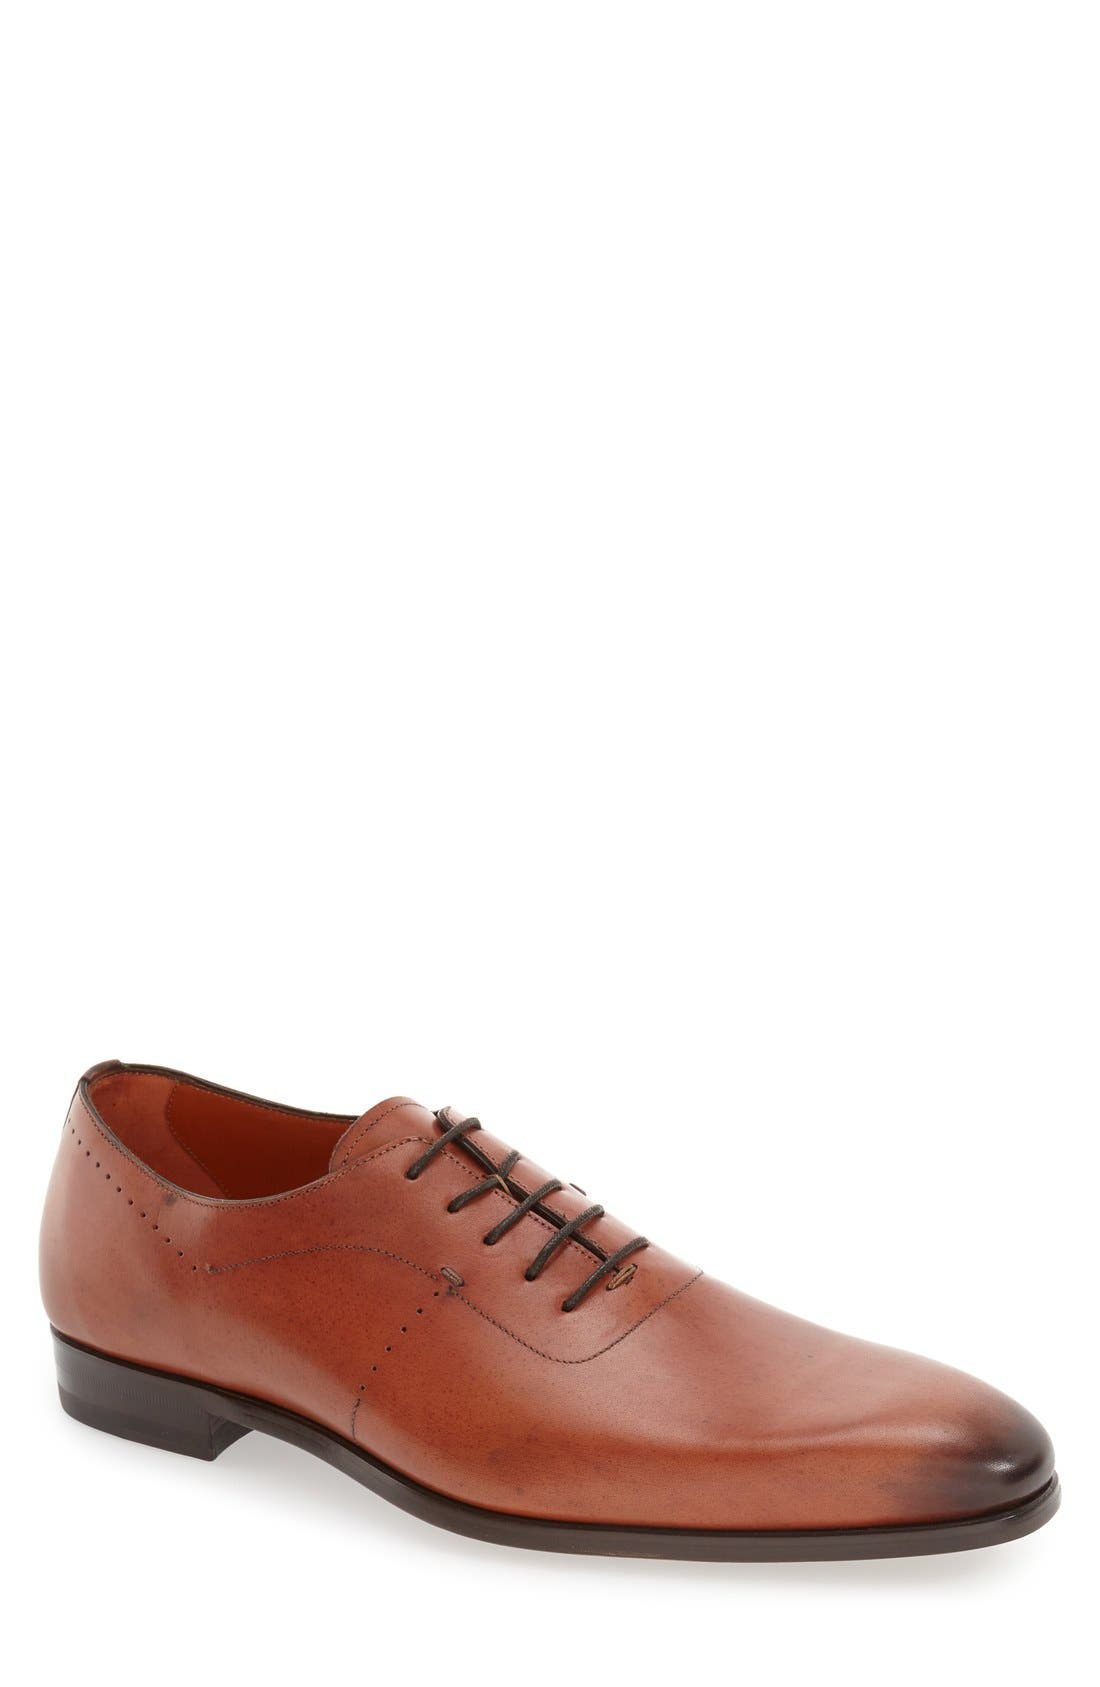 MEZLAN 'Canolo' Plain Toe Oxford